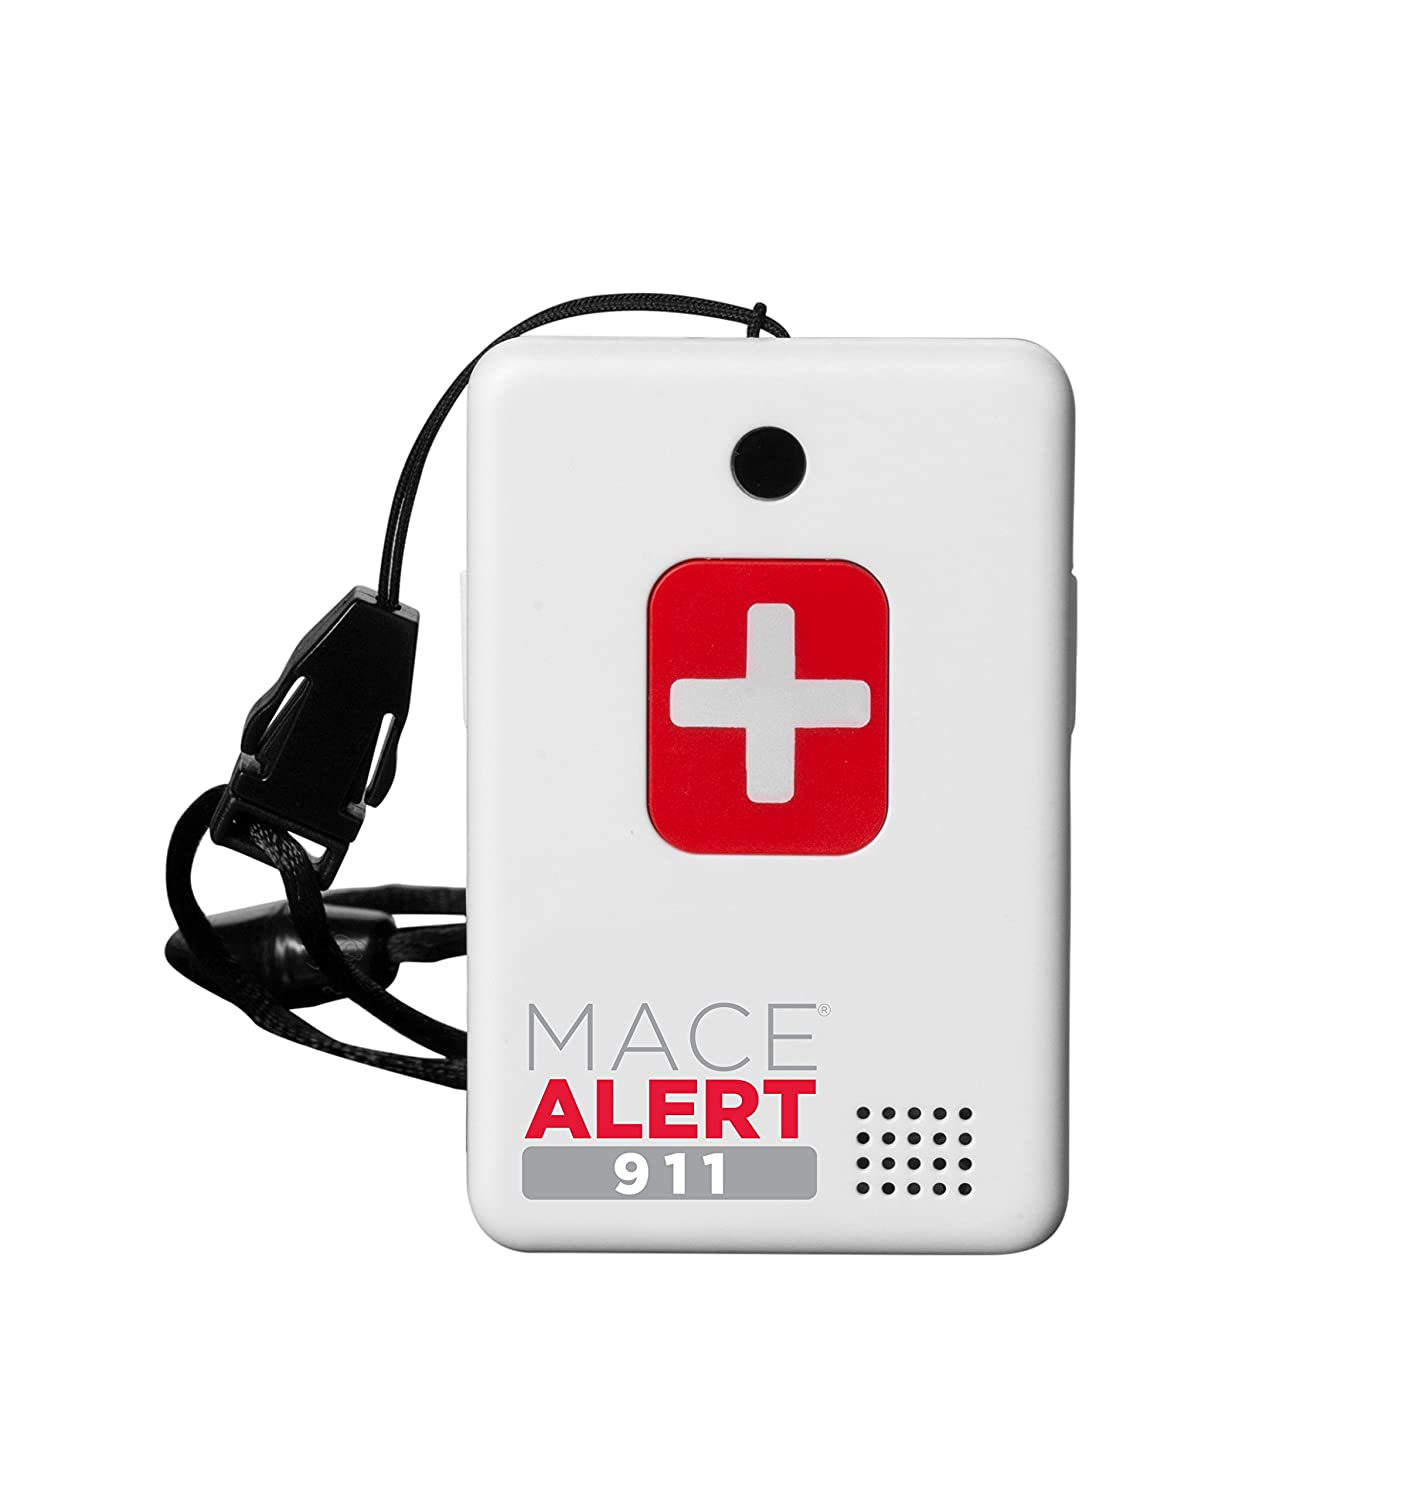 Buy Mace Brand Alert 911 One Touch Direct Connection Online at Low Price in  India | Mace Camera Reviews & Ratings - Amazon.in